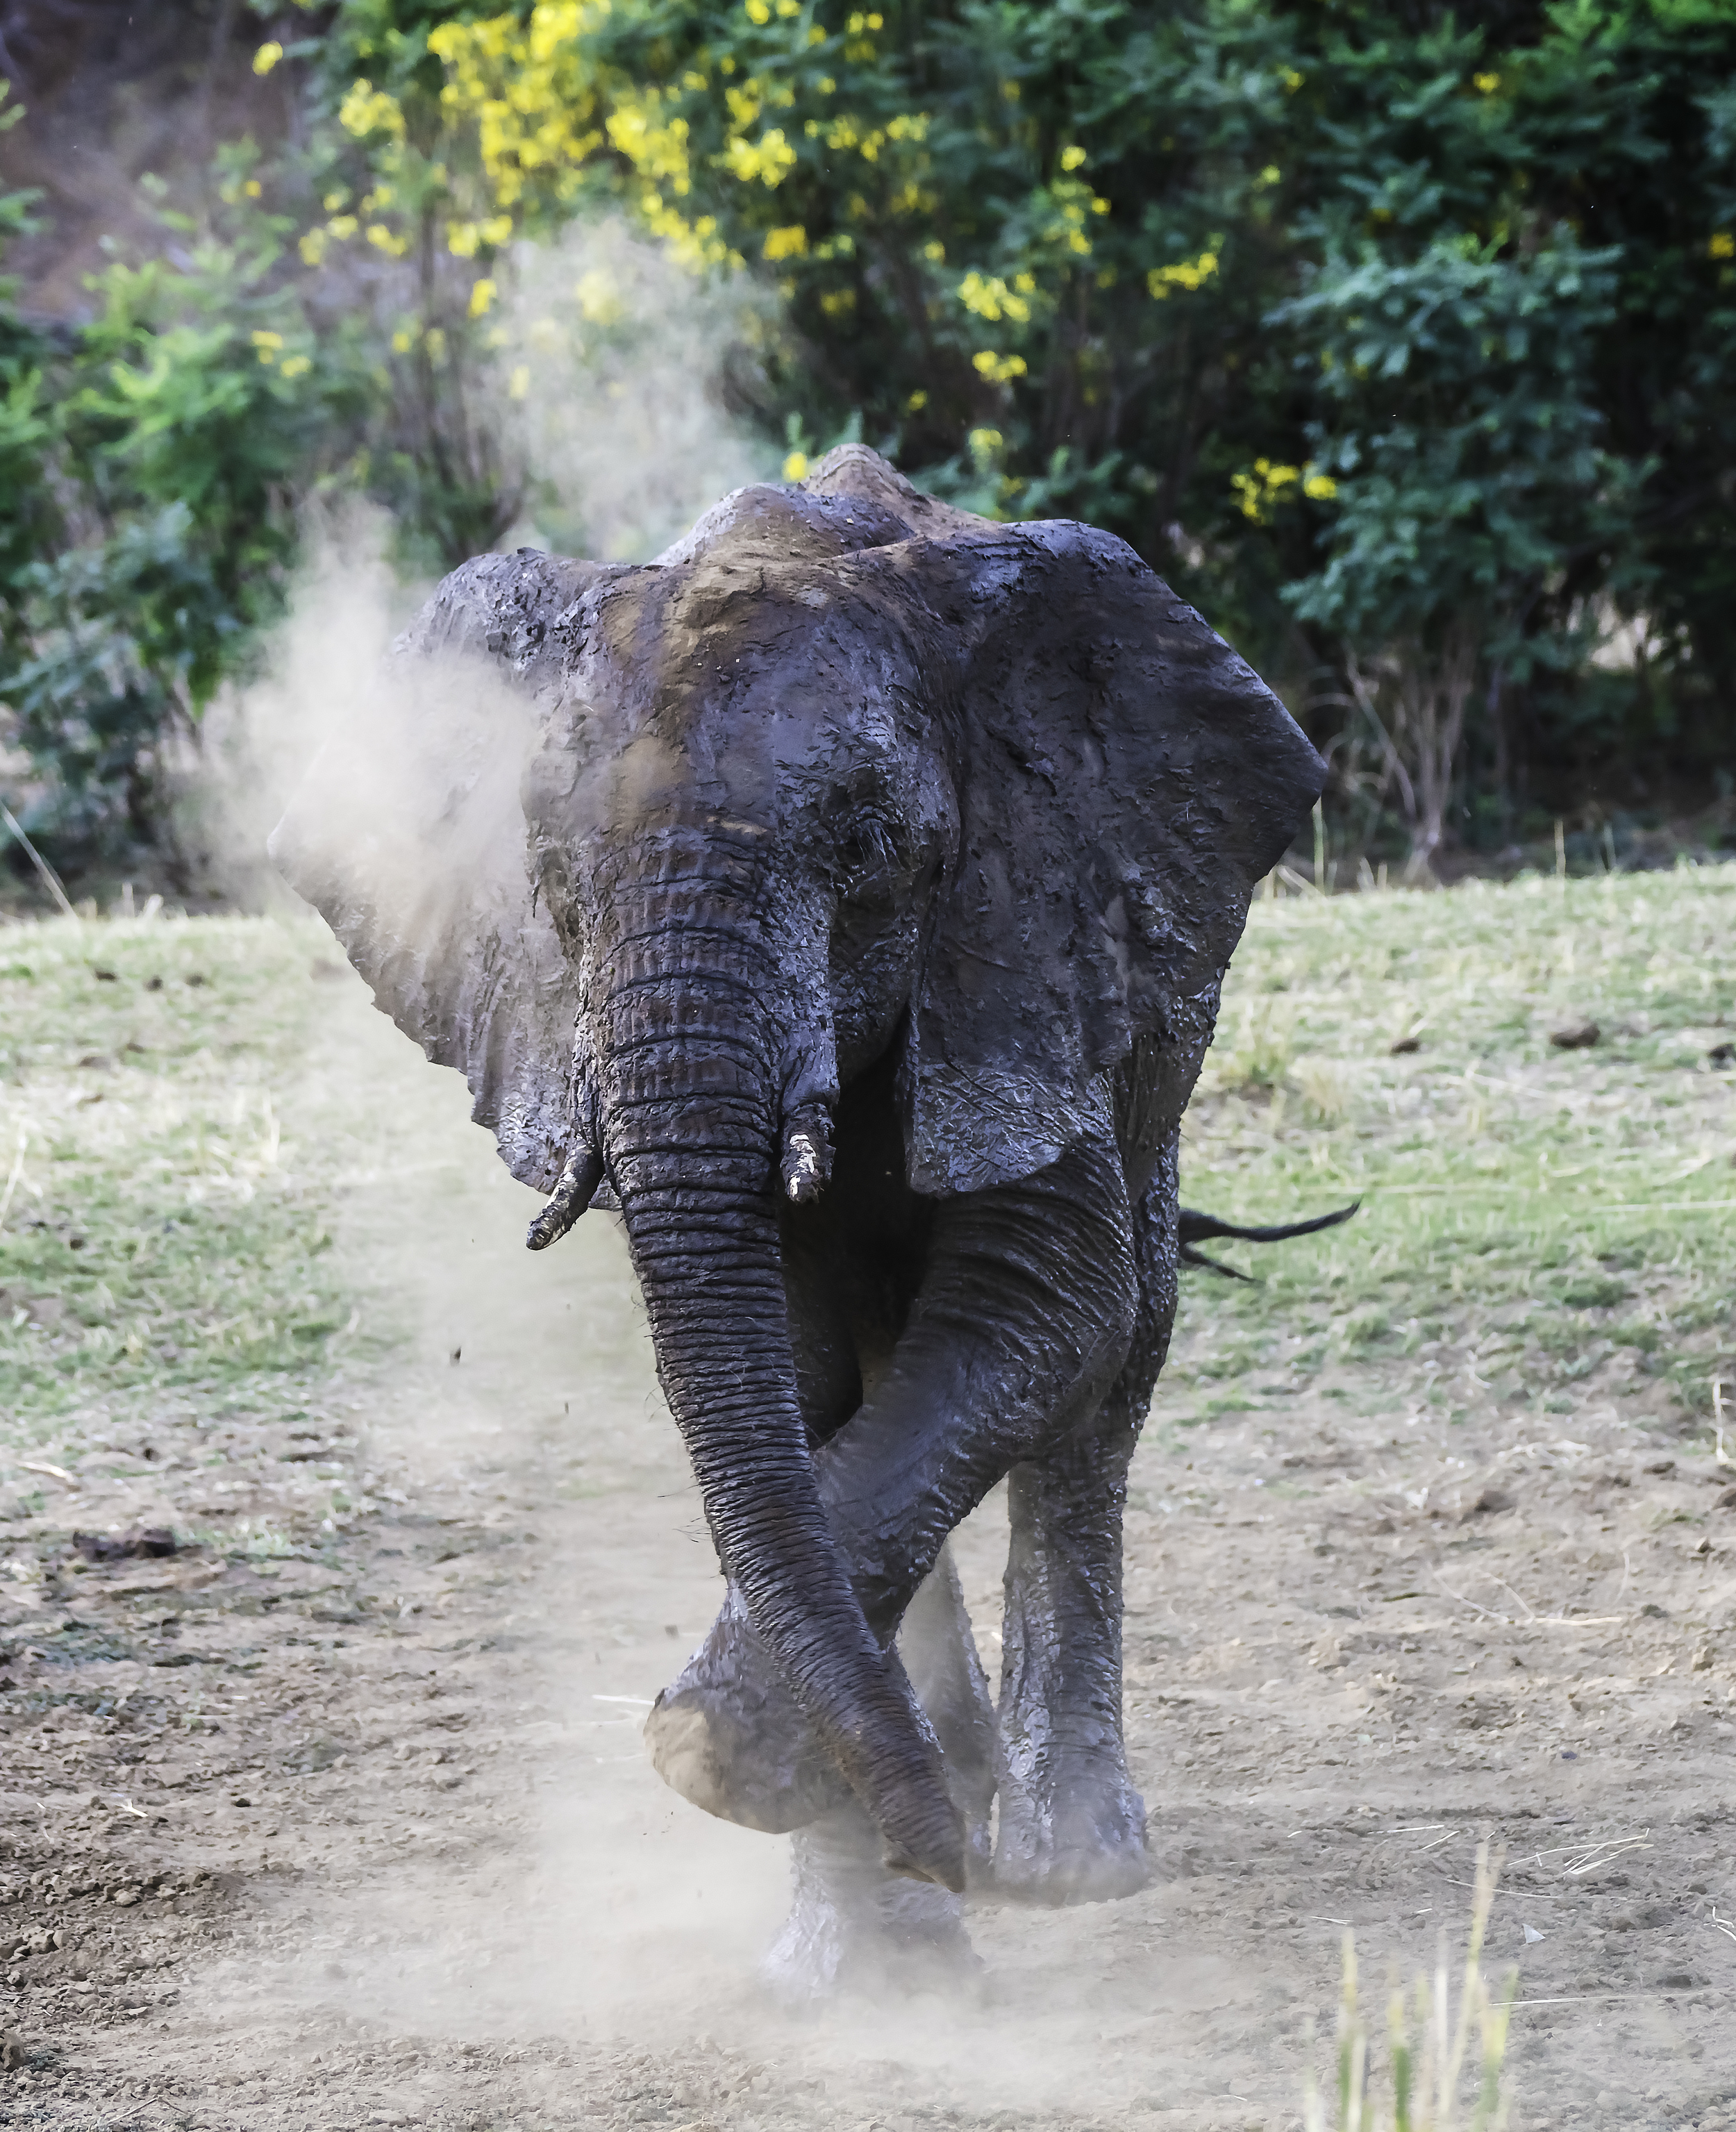 Elephant in Zambia, dusting itself off after a mud bath in the Zambezi river